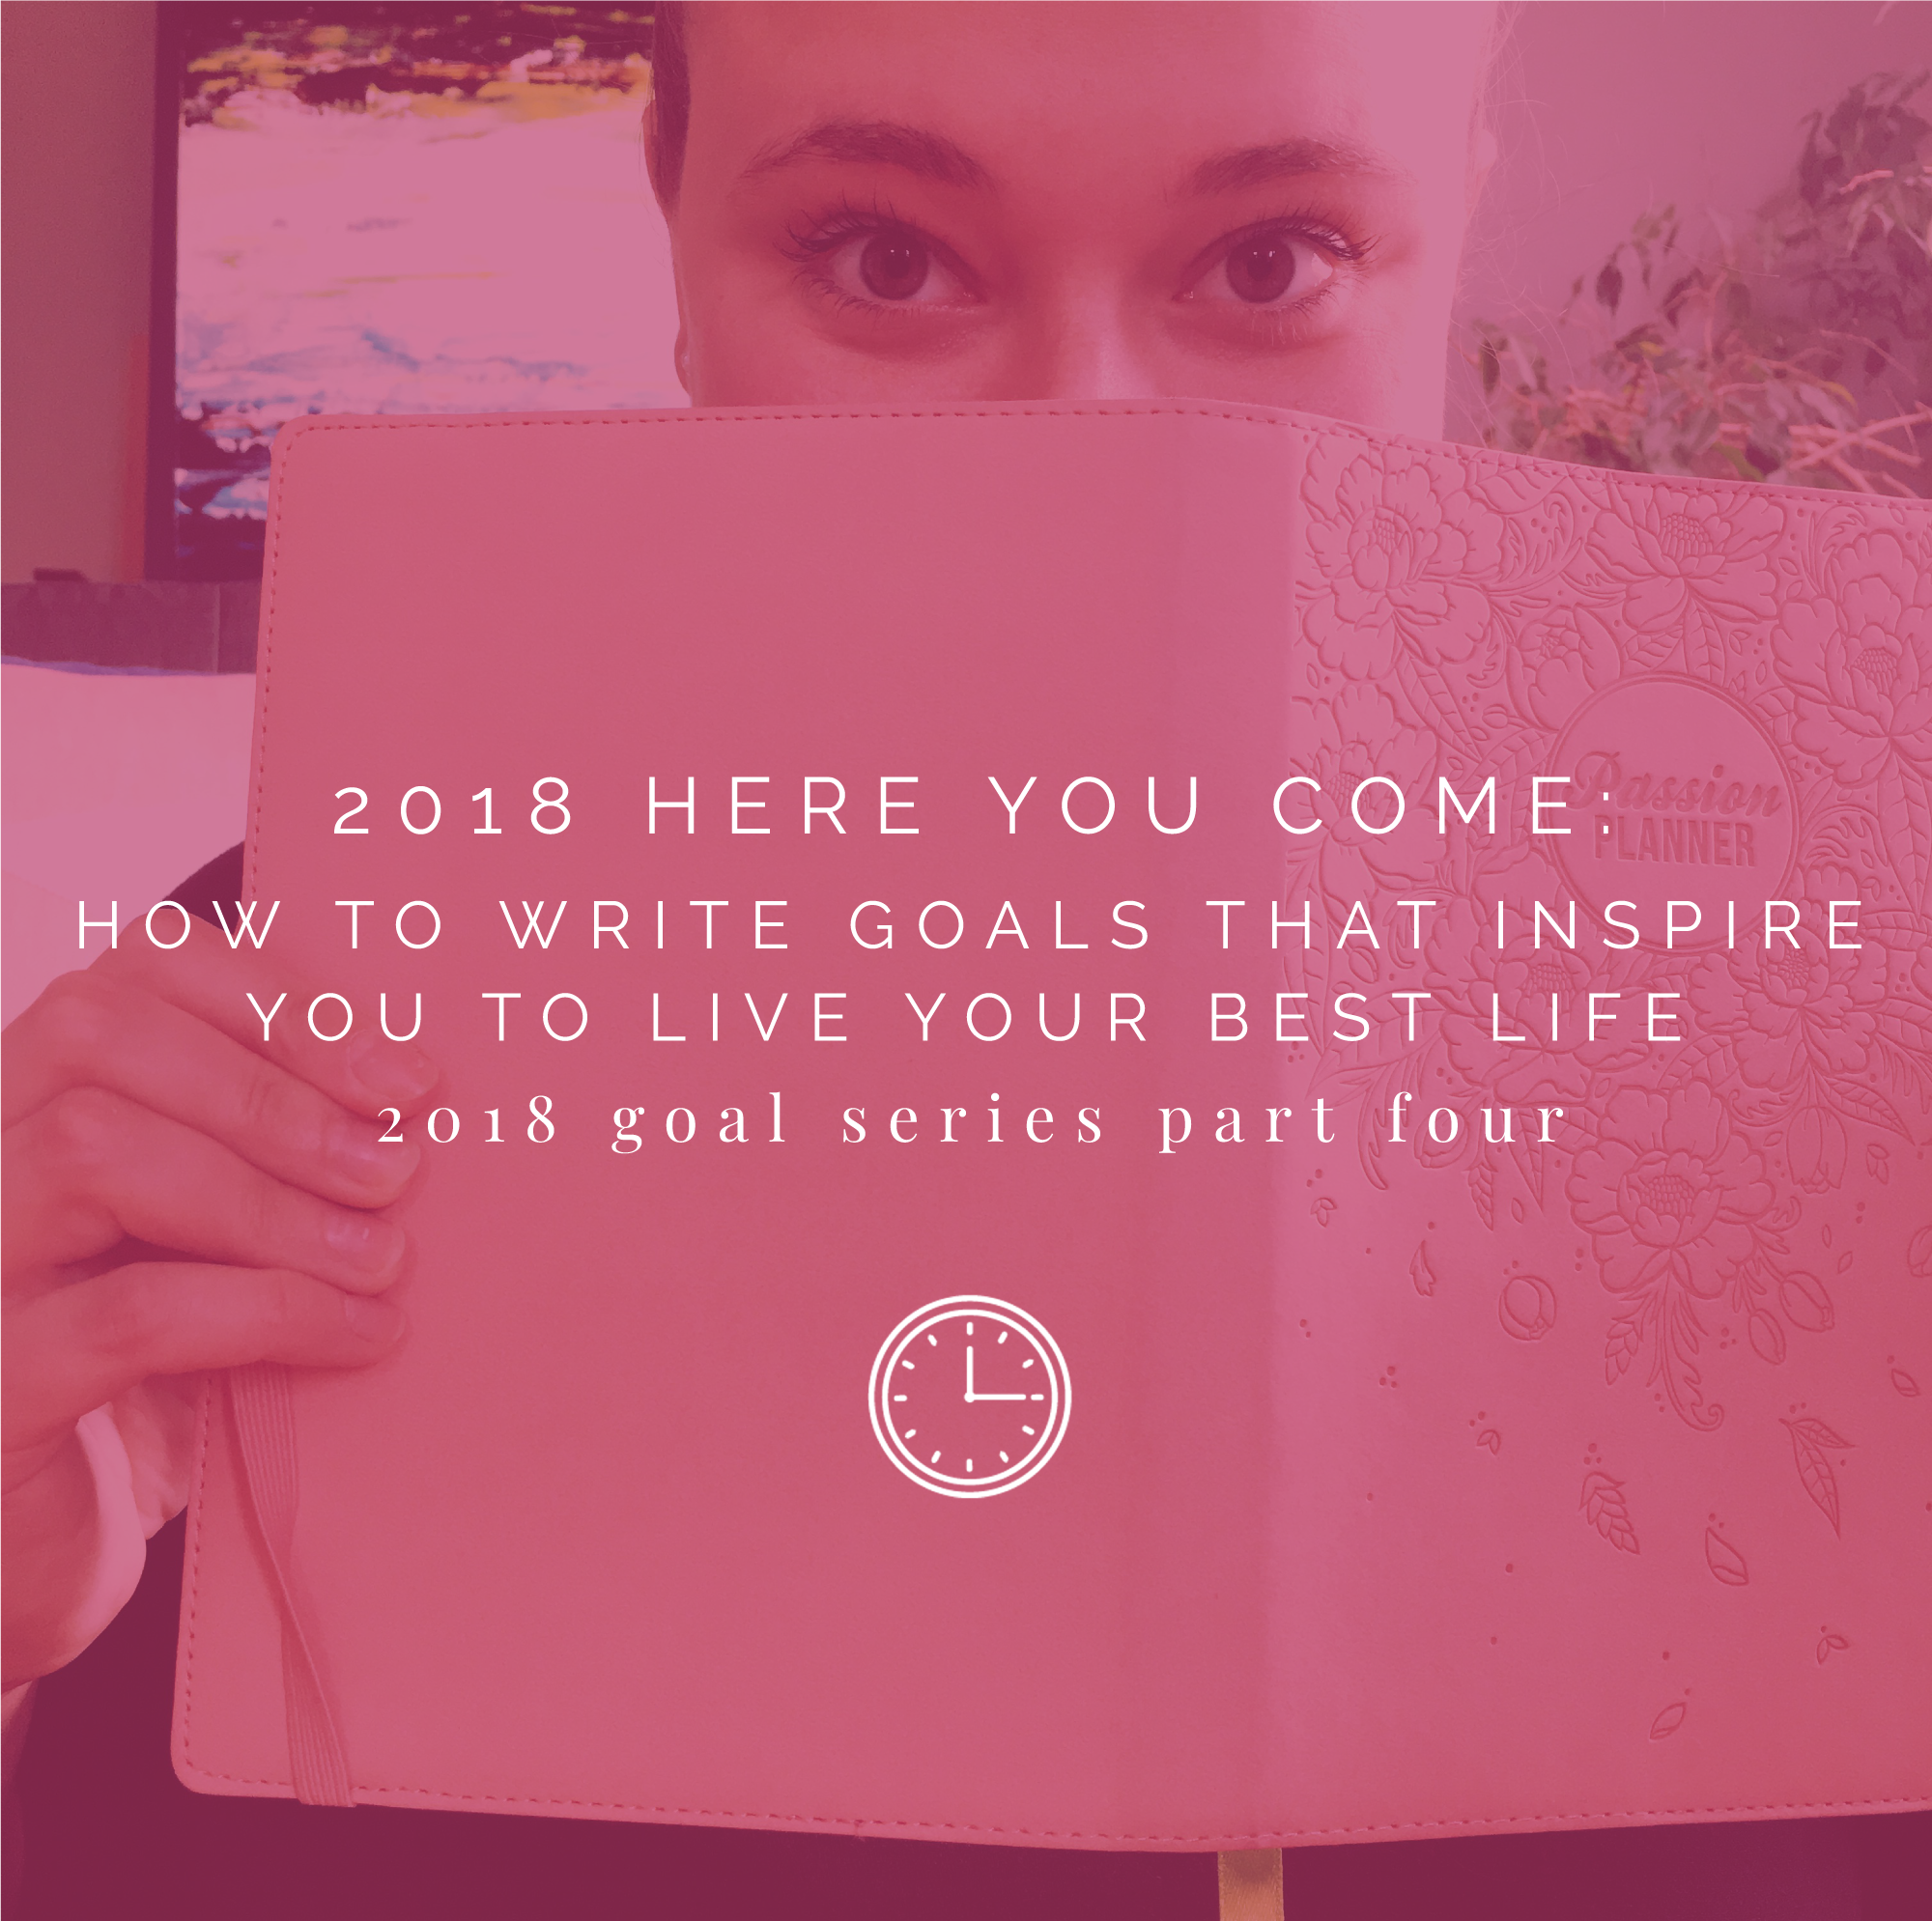 How to Write Goals That Inspire You to Live Your Best Life Feature Image